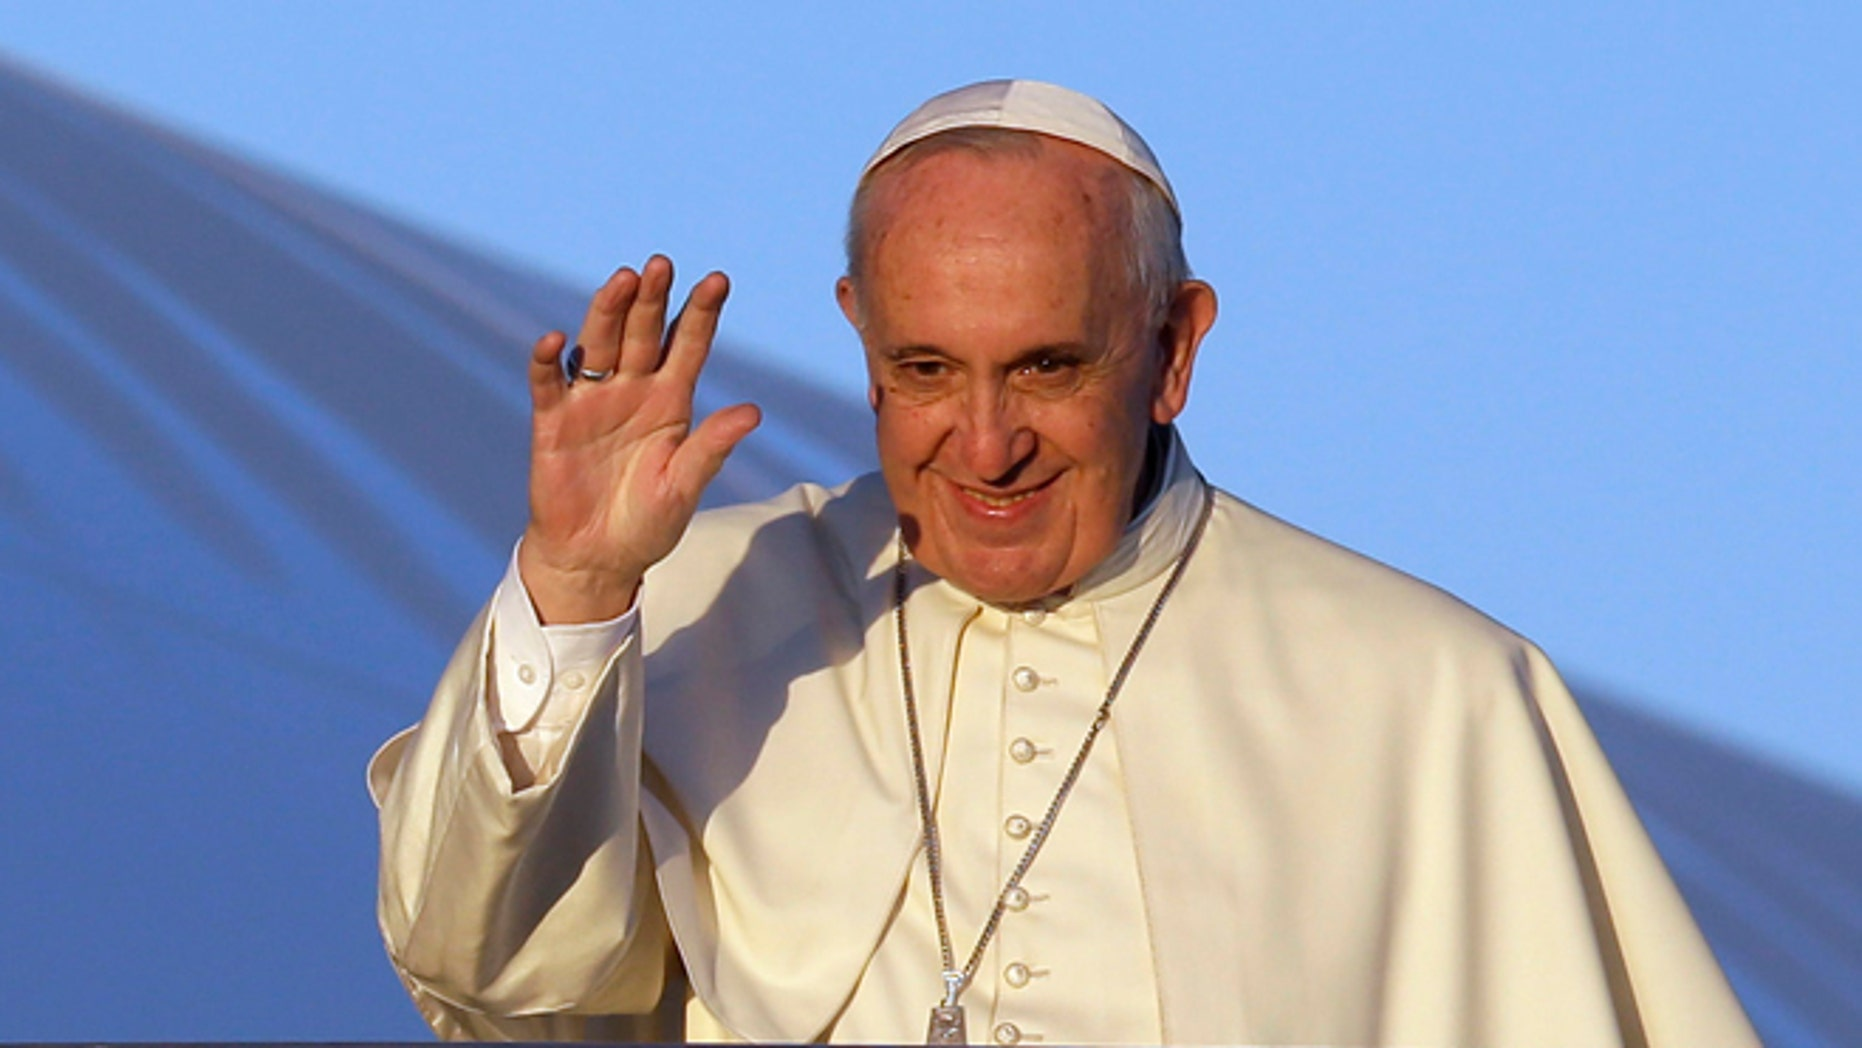 Pope Francis waves to journalists as he boards his airplane to Africa on Nov. 25, 2015.